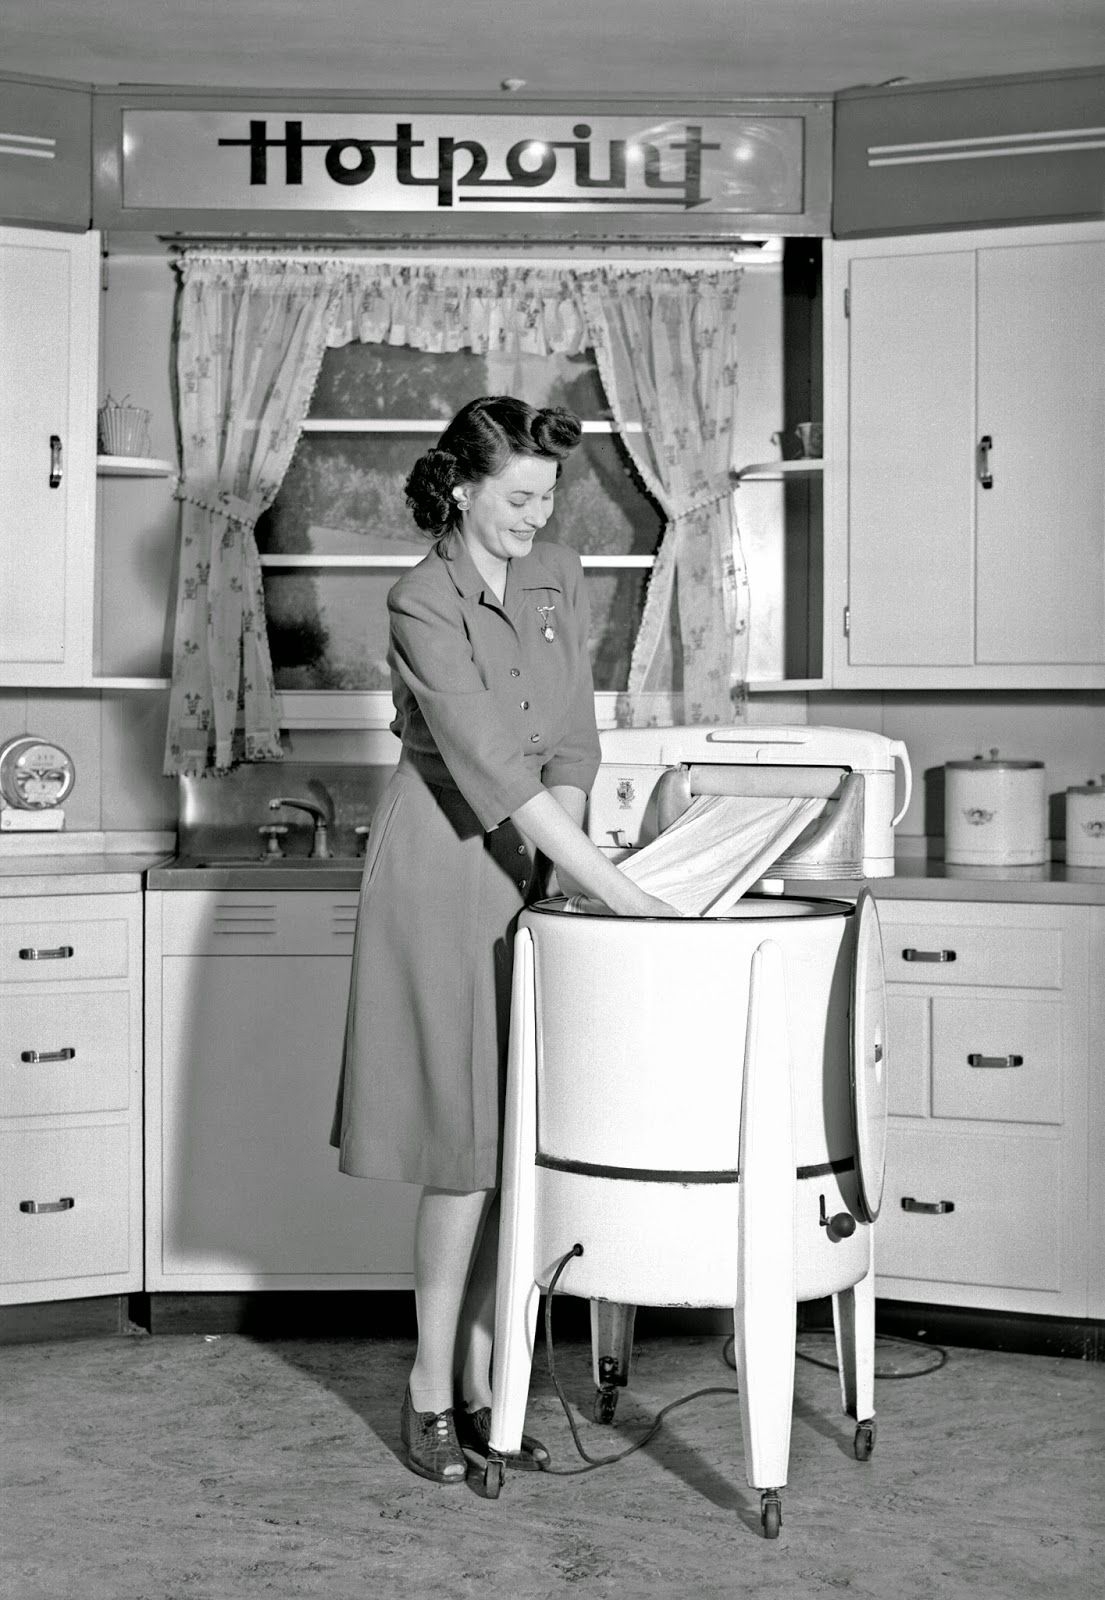 Uncategorized 1940s Kitchen Appliances a woman demonstrates hotpoint wringer washing machine 1943 vintage 1940s